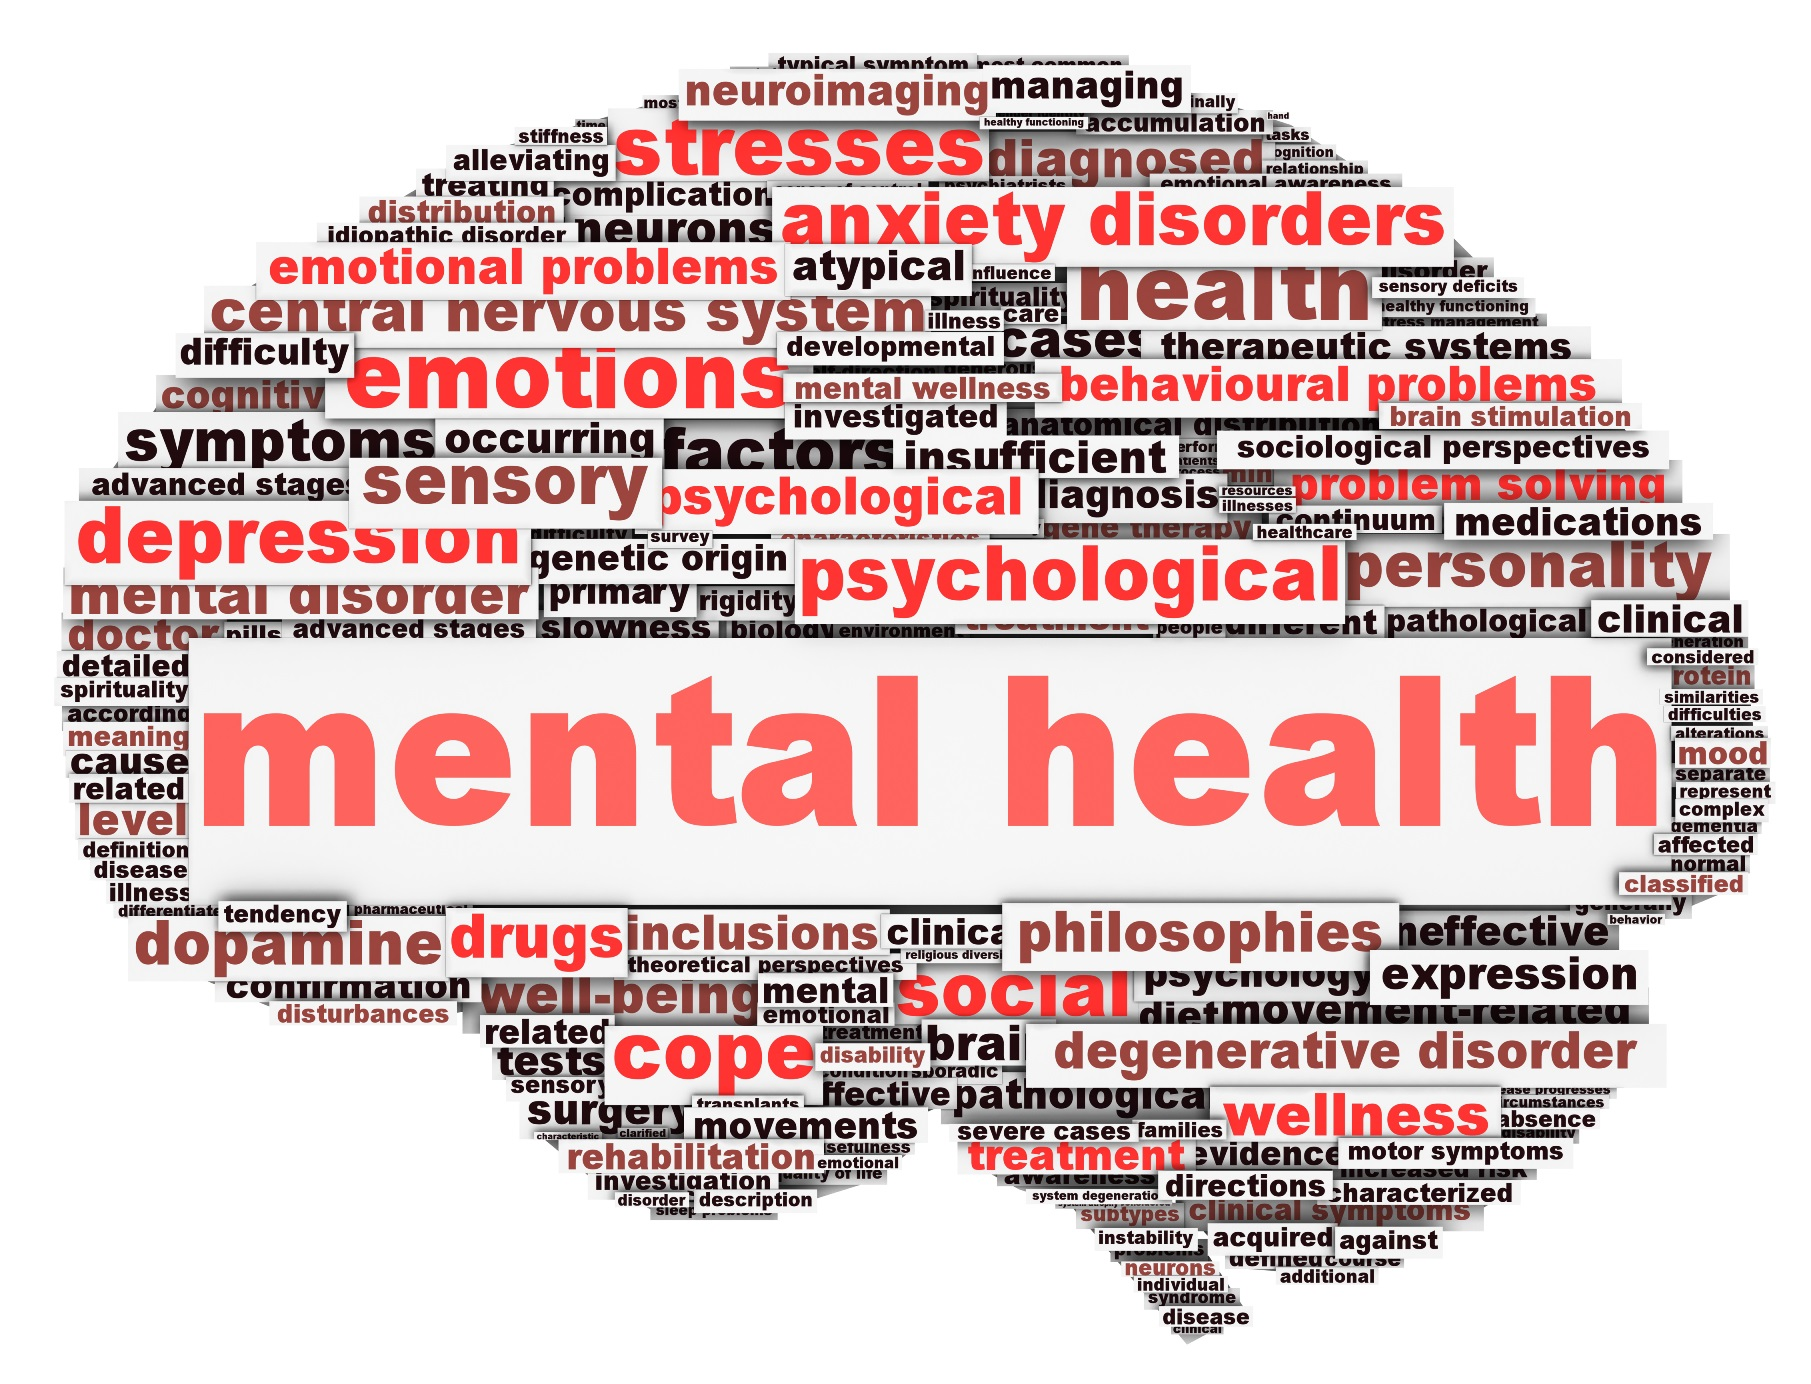 Mental Health Essays: Interesting Topics That Can Be Developed